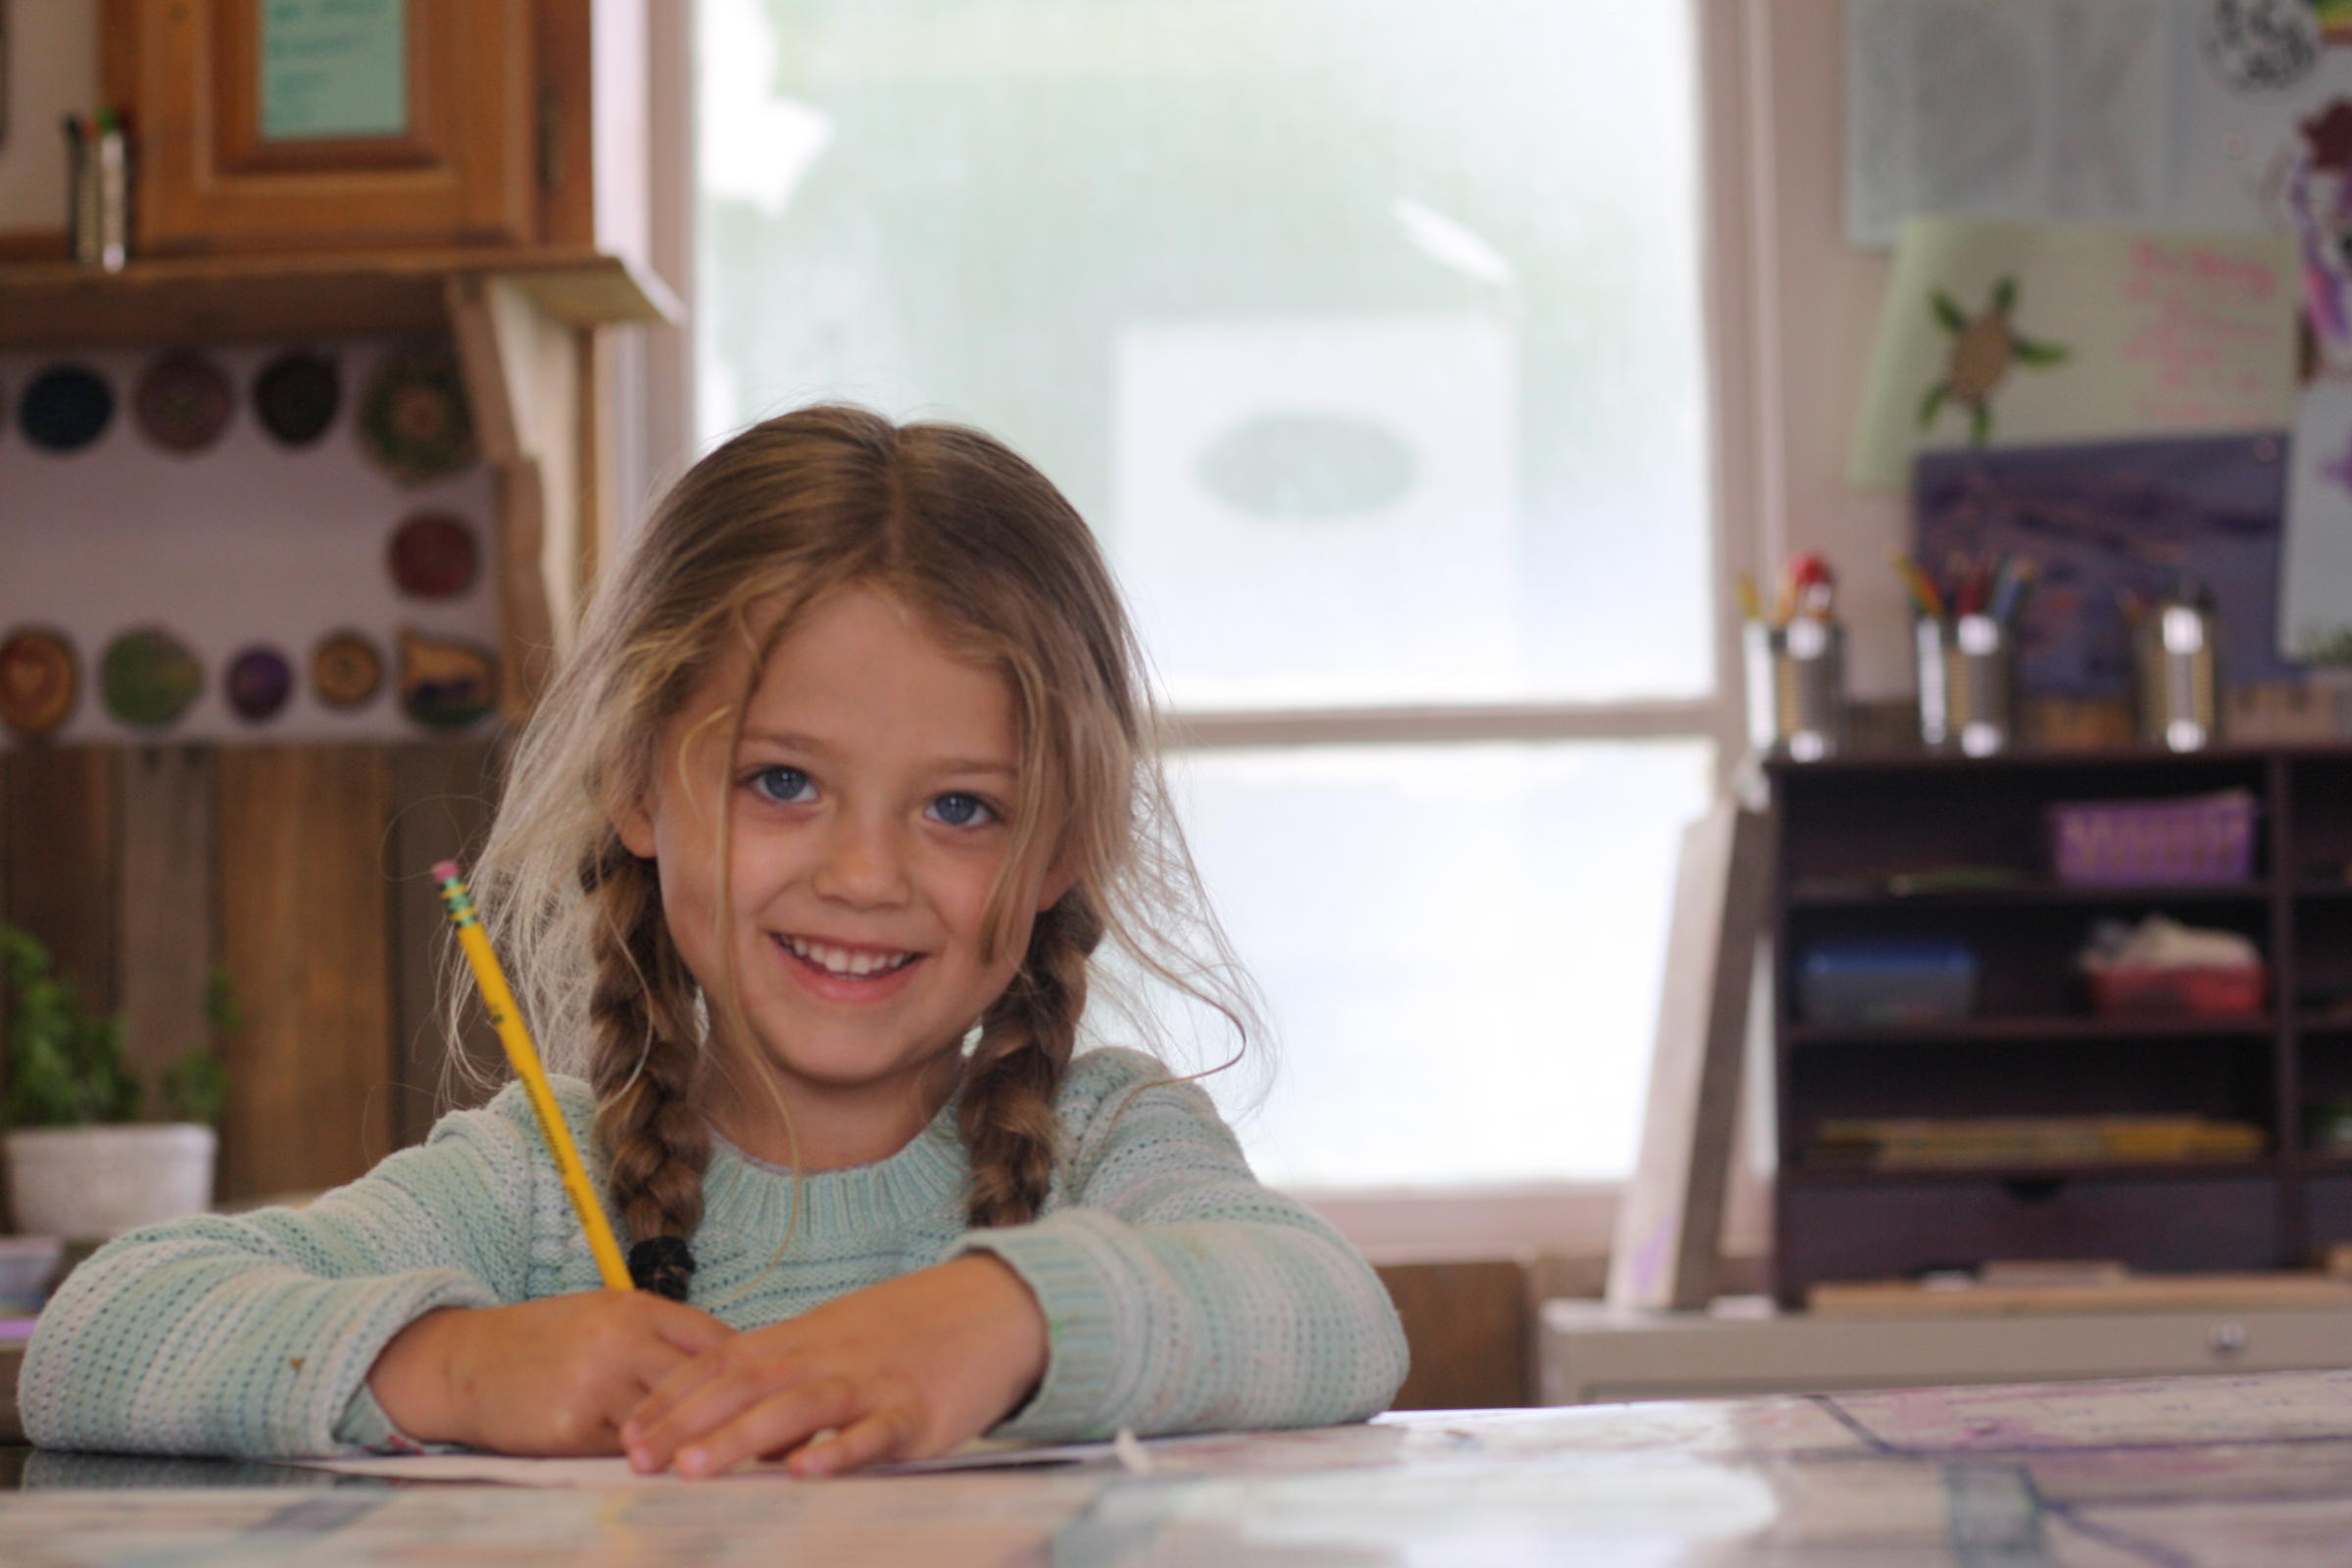 Mischaell Romo, 4, lives in the same building as the Dillingham Christian Youth Center. She's familiar with many of the youth who spend time there, and she's always looking for someone to draw, paint, or color with. (Photo by Zoey Laird/KDLG)